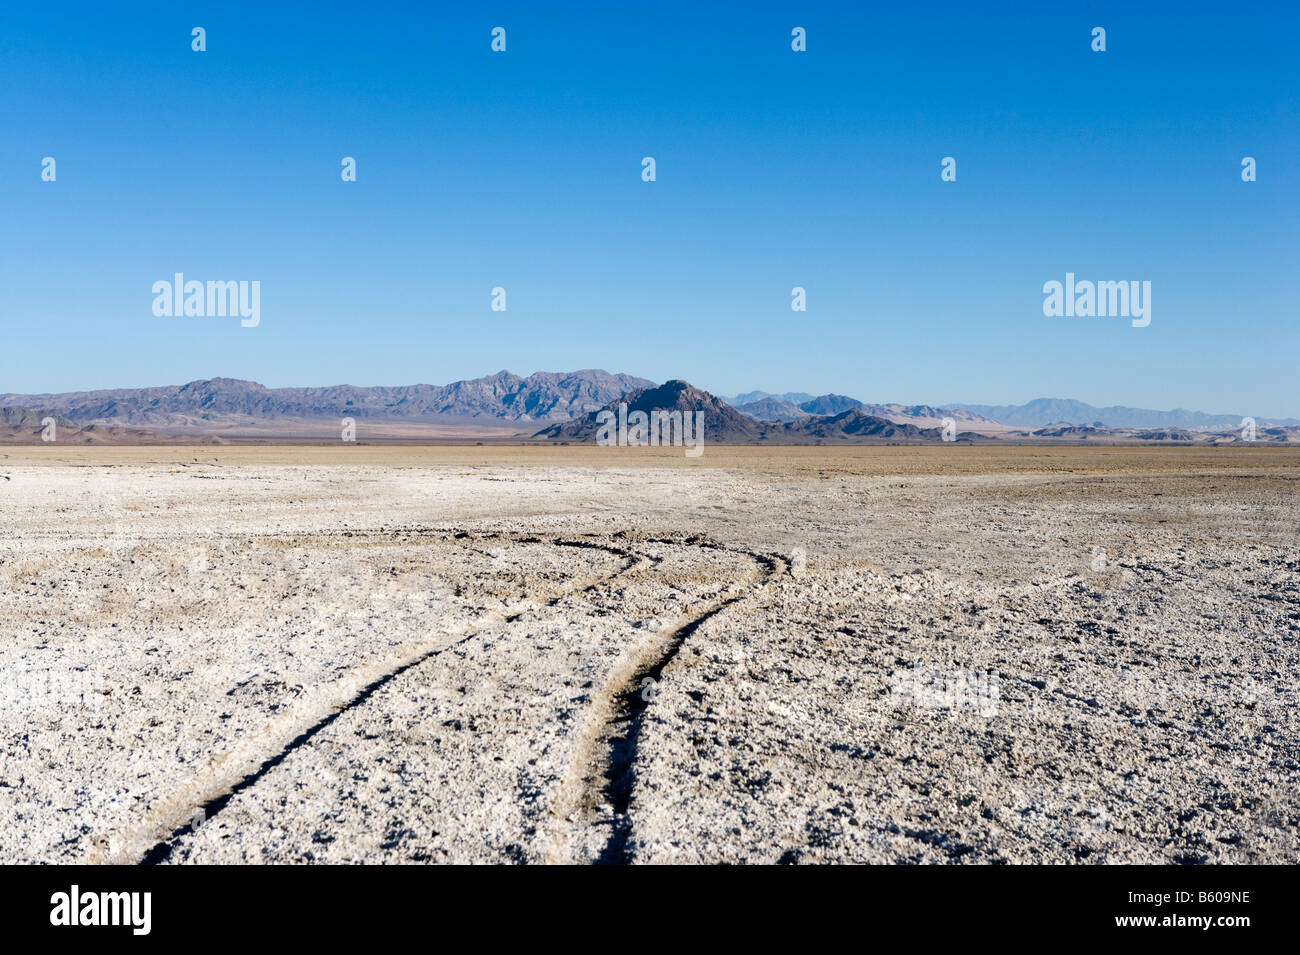 Landscape in the Mojave Desert on the Zzyzx Road just off Interstate 15 between LA and Las Vegas, California, USA - Stock Image